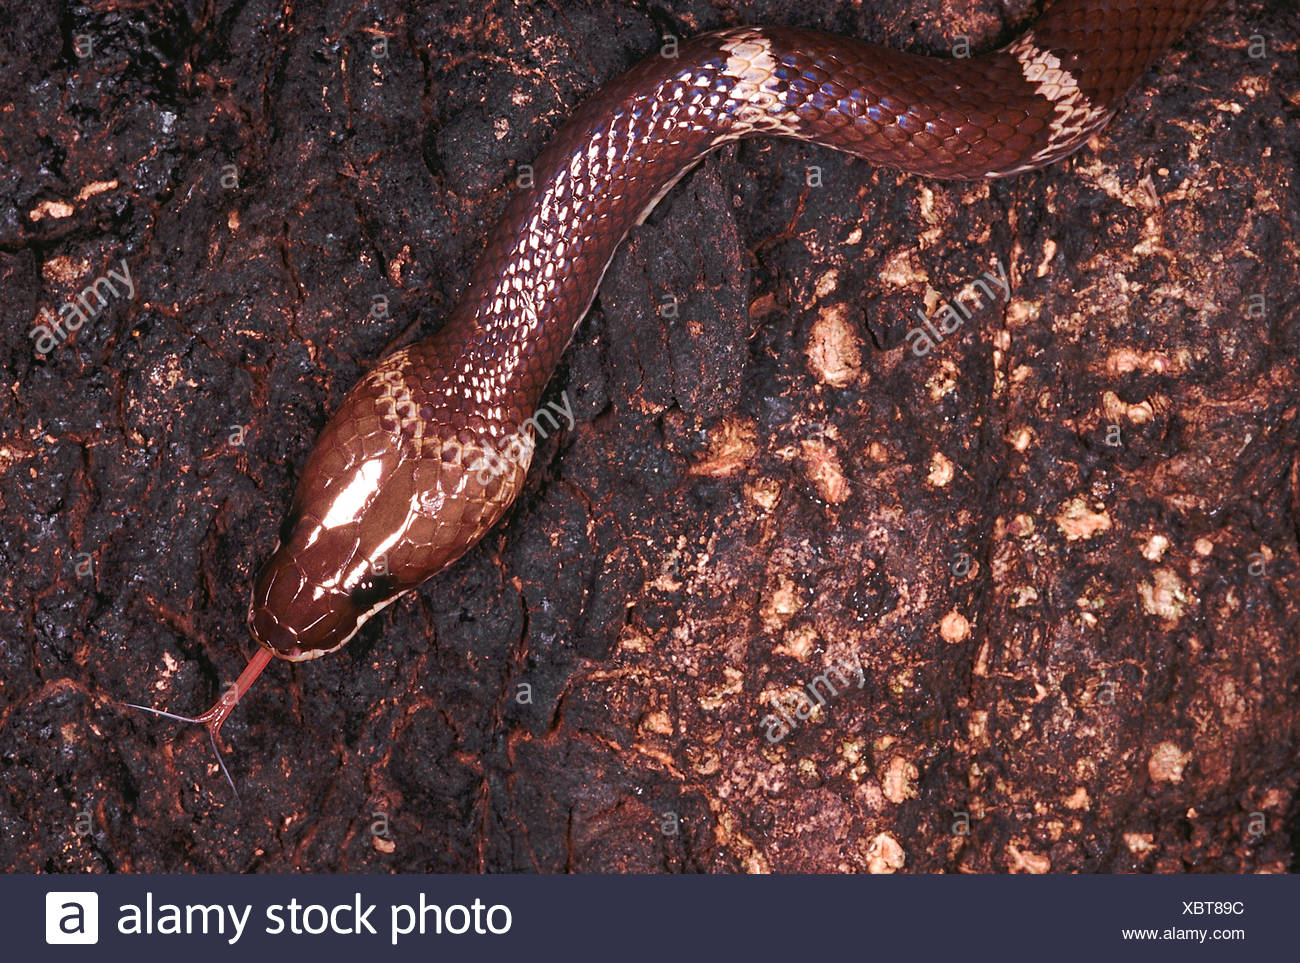 Oligodon Taeniolatus. Russell's or Variegated Kukri snake. An uncommon snake which is quite docile as well as shy. - Stock Image